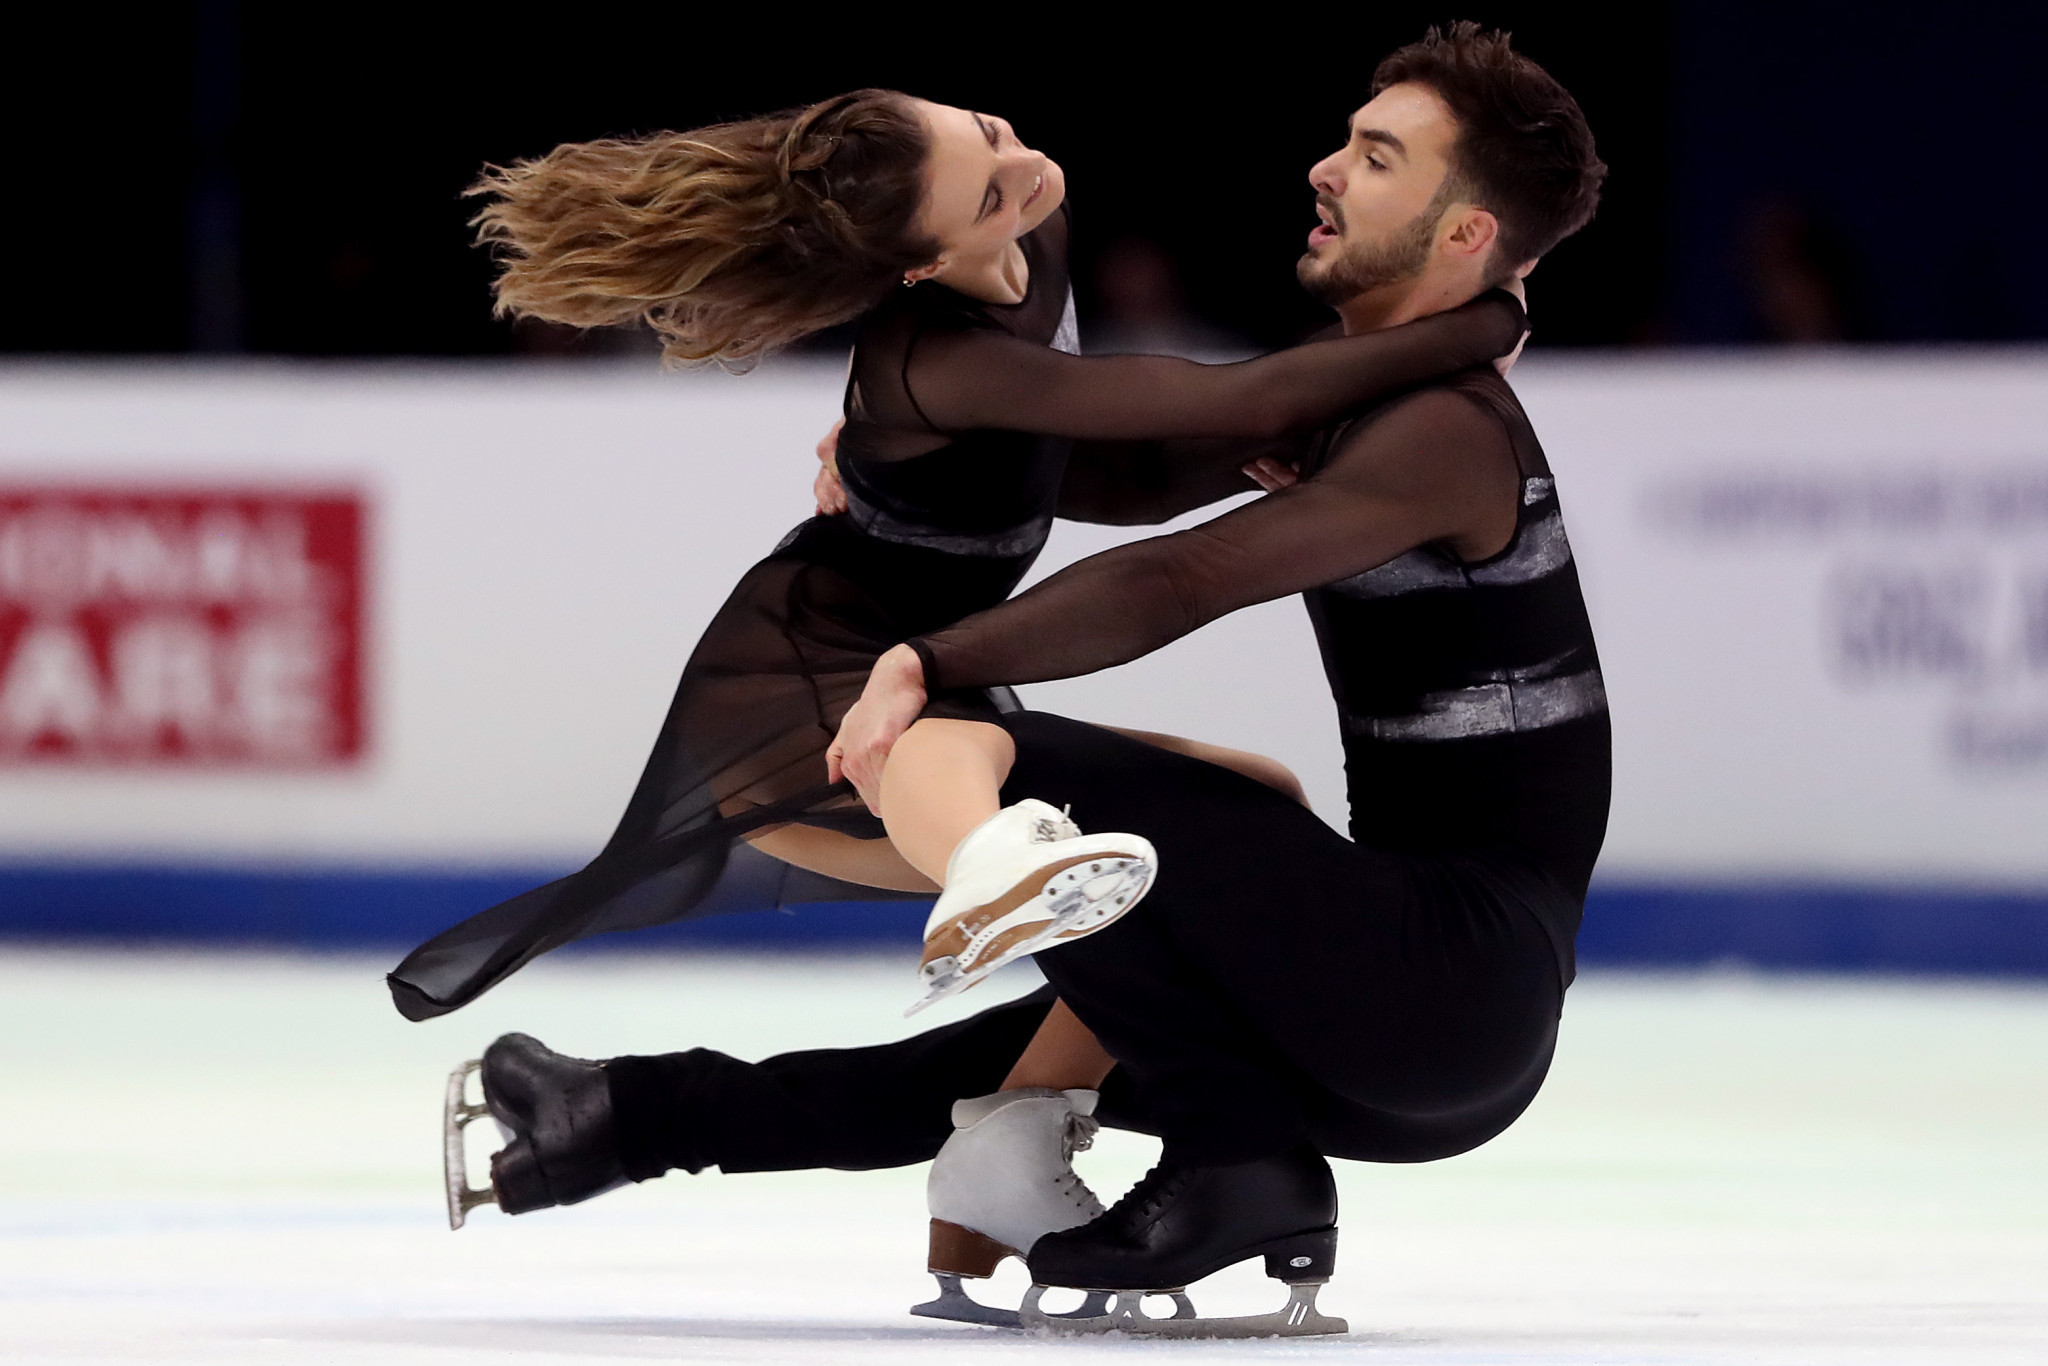 Gabriella Papadakis and Guillaume Cizeron are set to take part in the I.AM LIVE event ©Getty Images